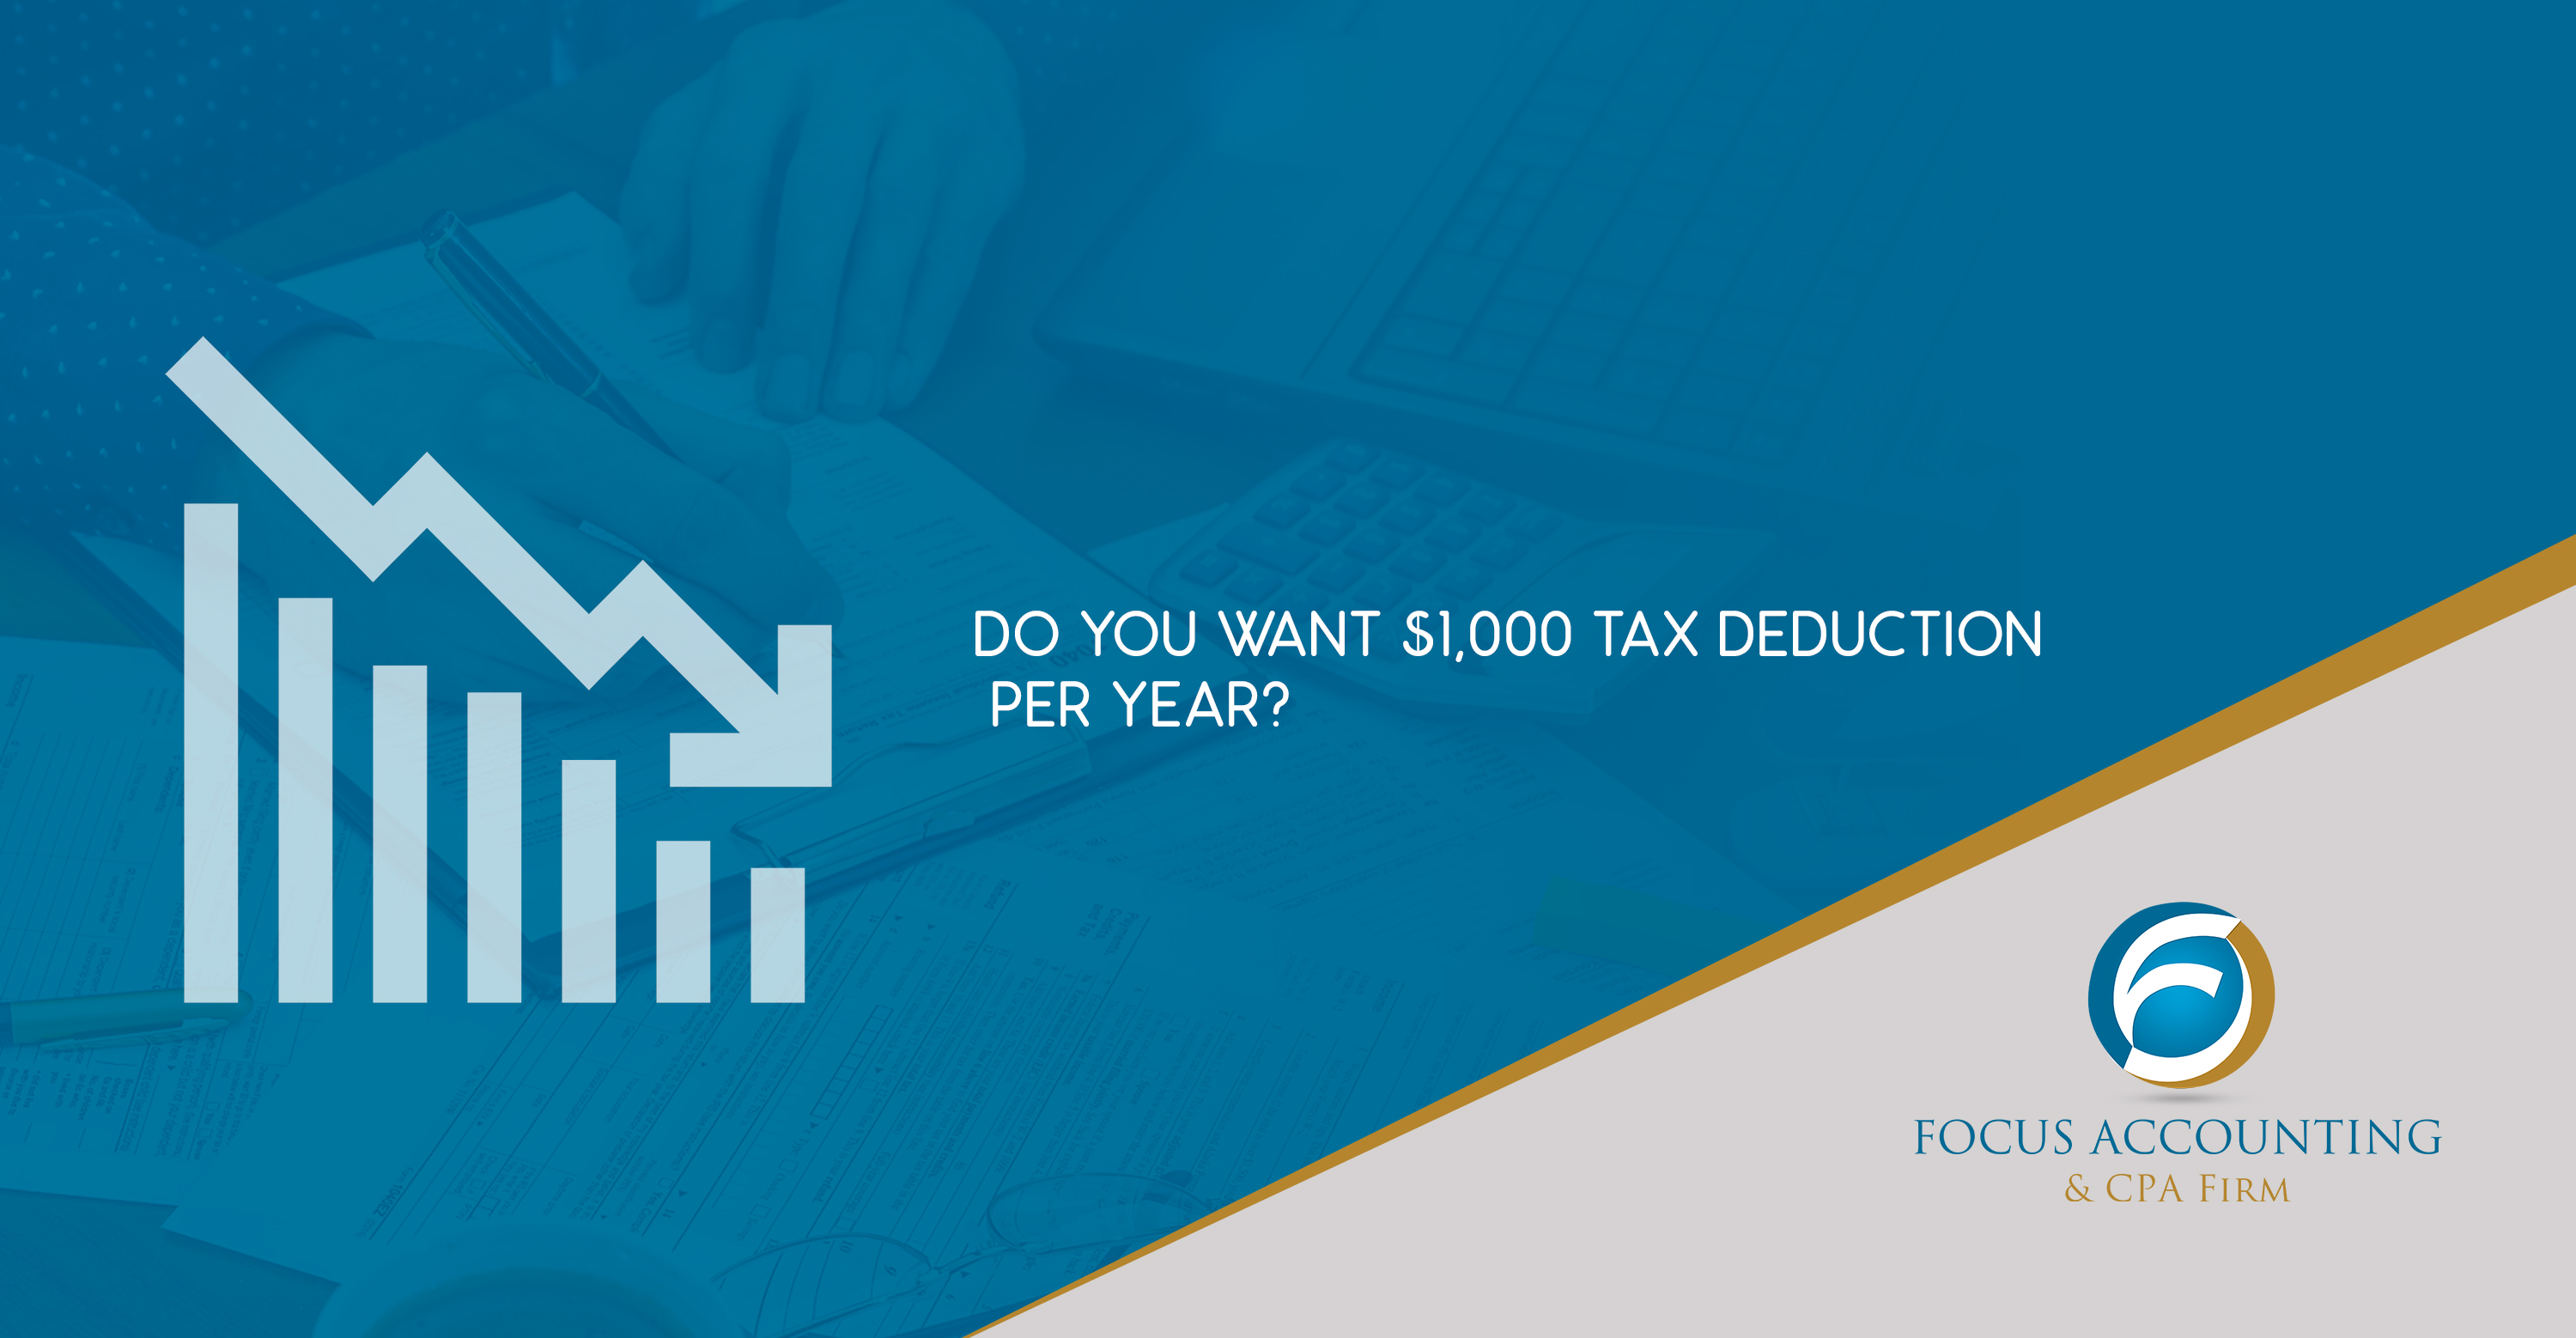 Do you want $1,000 tax deduction per year